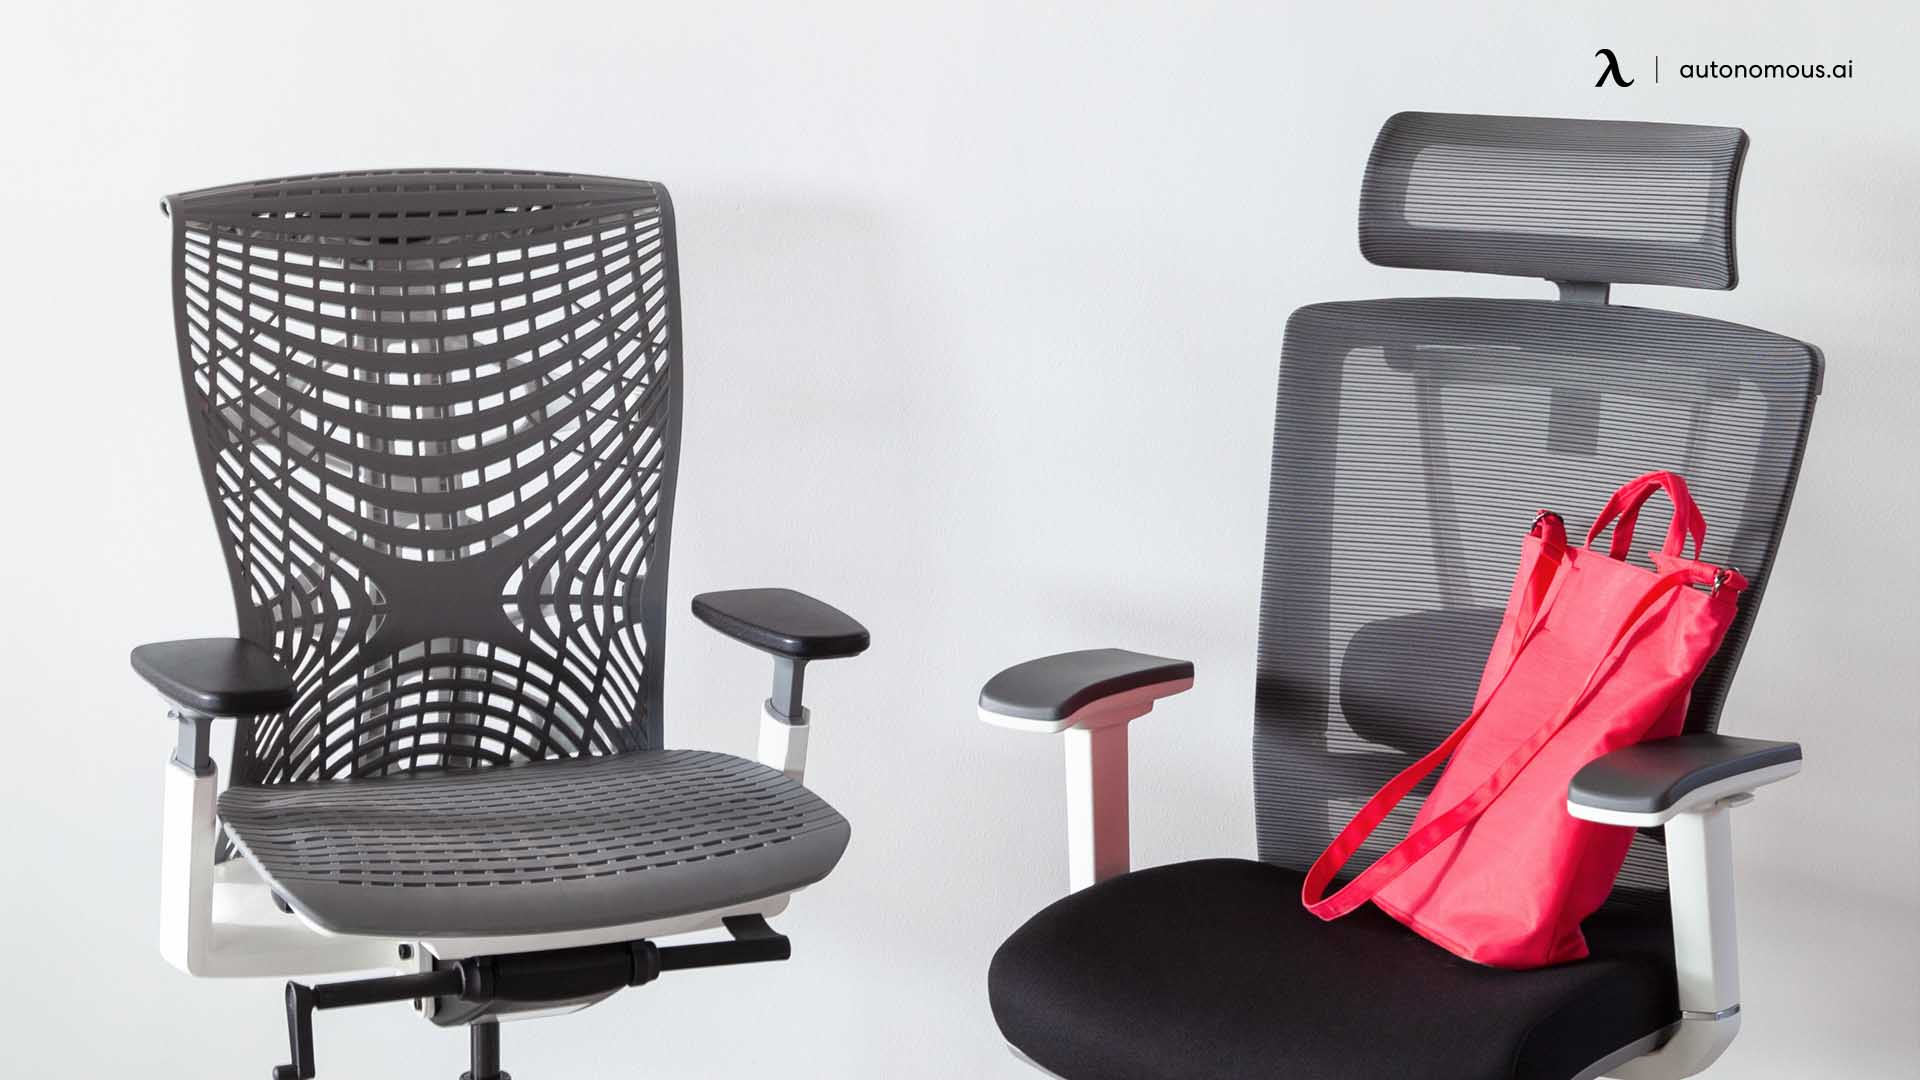 The pros of an ergonomic chair